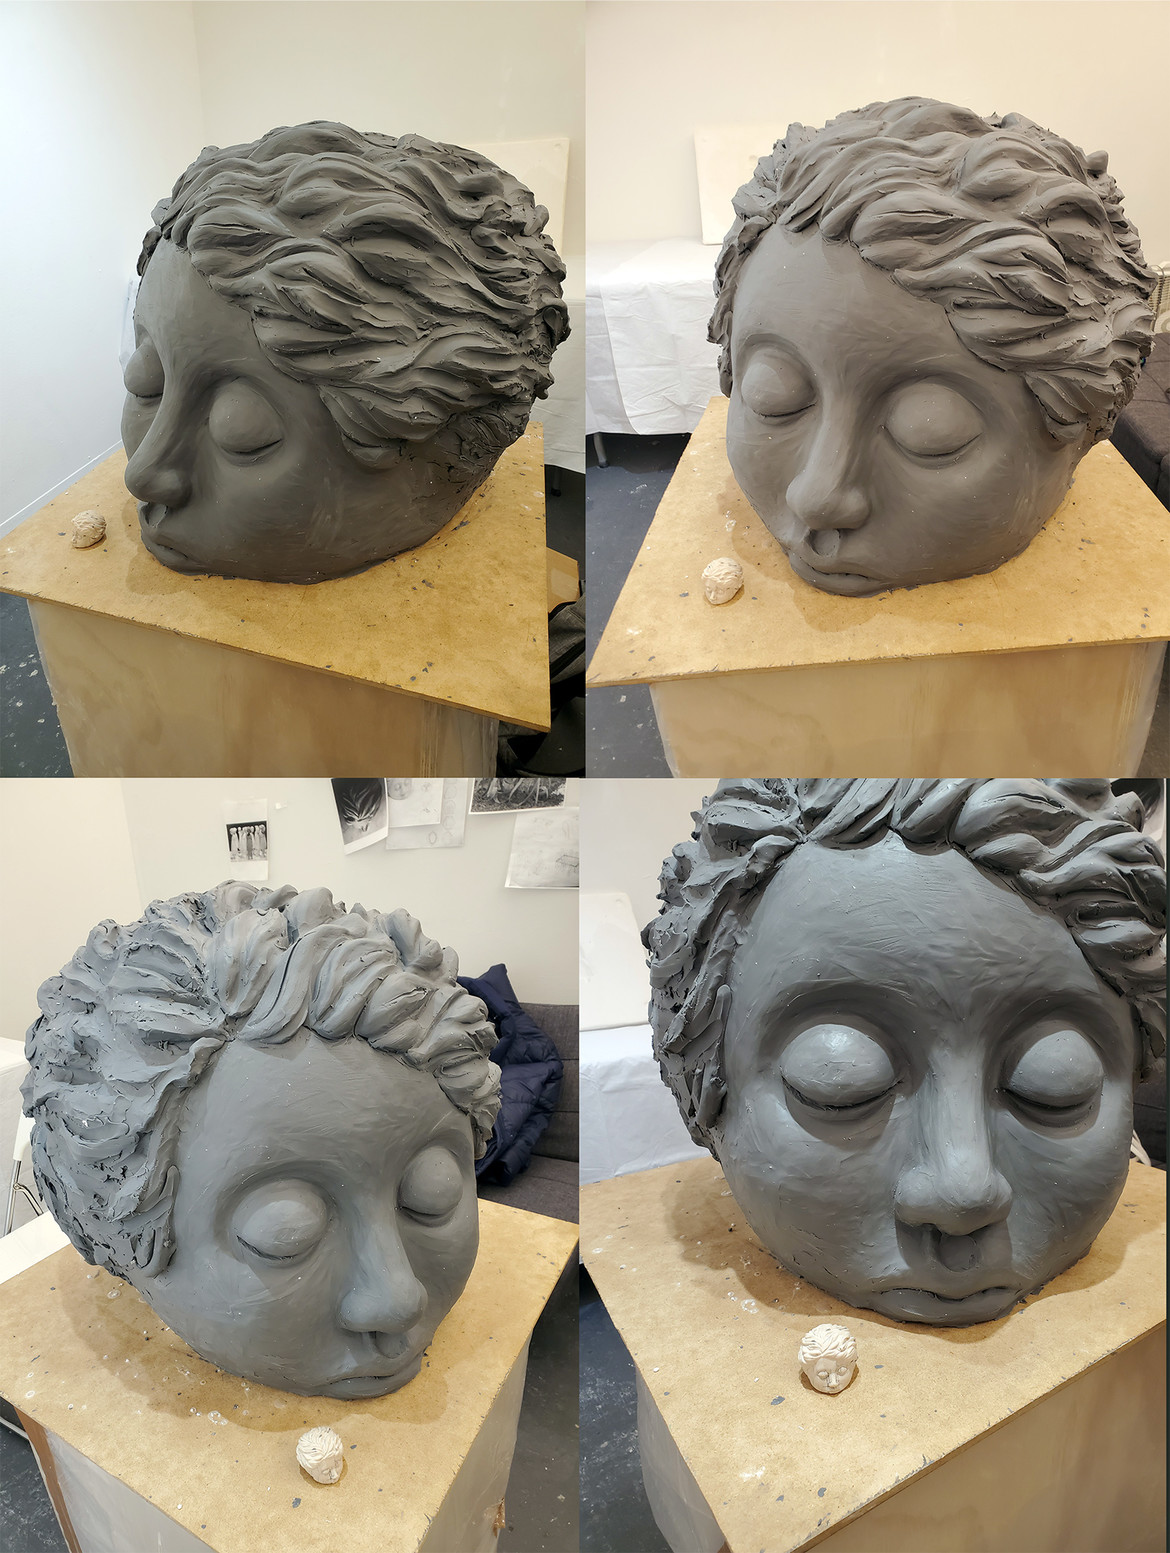 Process photos, Monumental clay head in progress for mold, and original reference head sculpture.